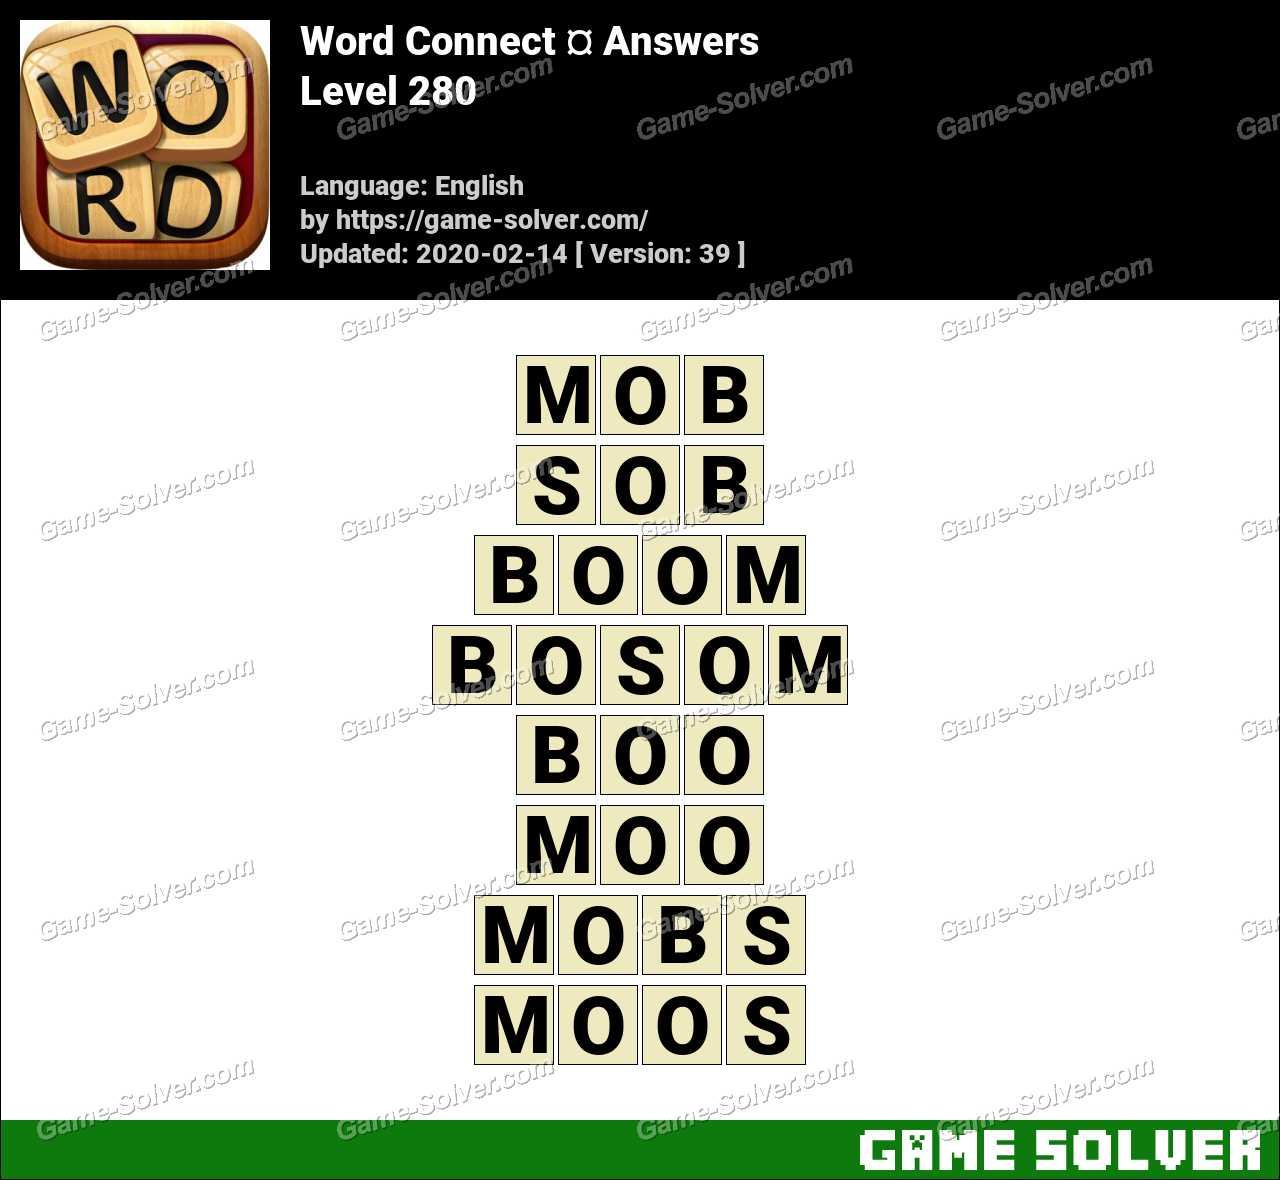 Word Connect Level 280 Answers